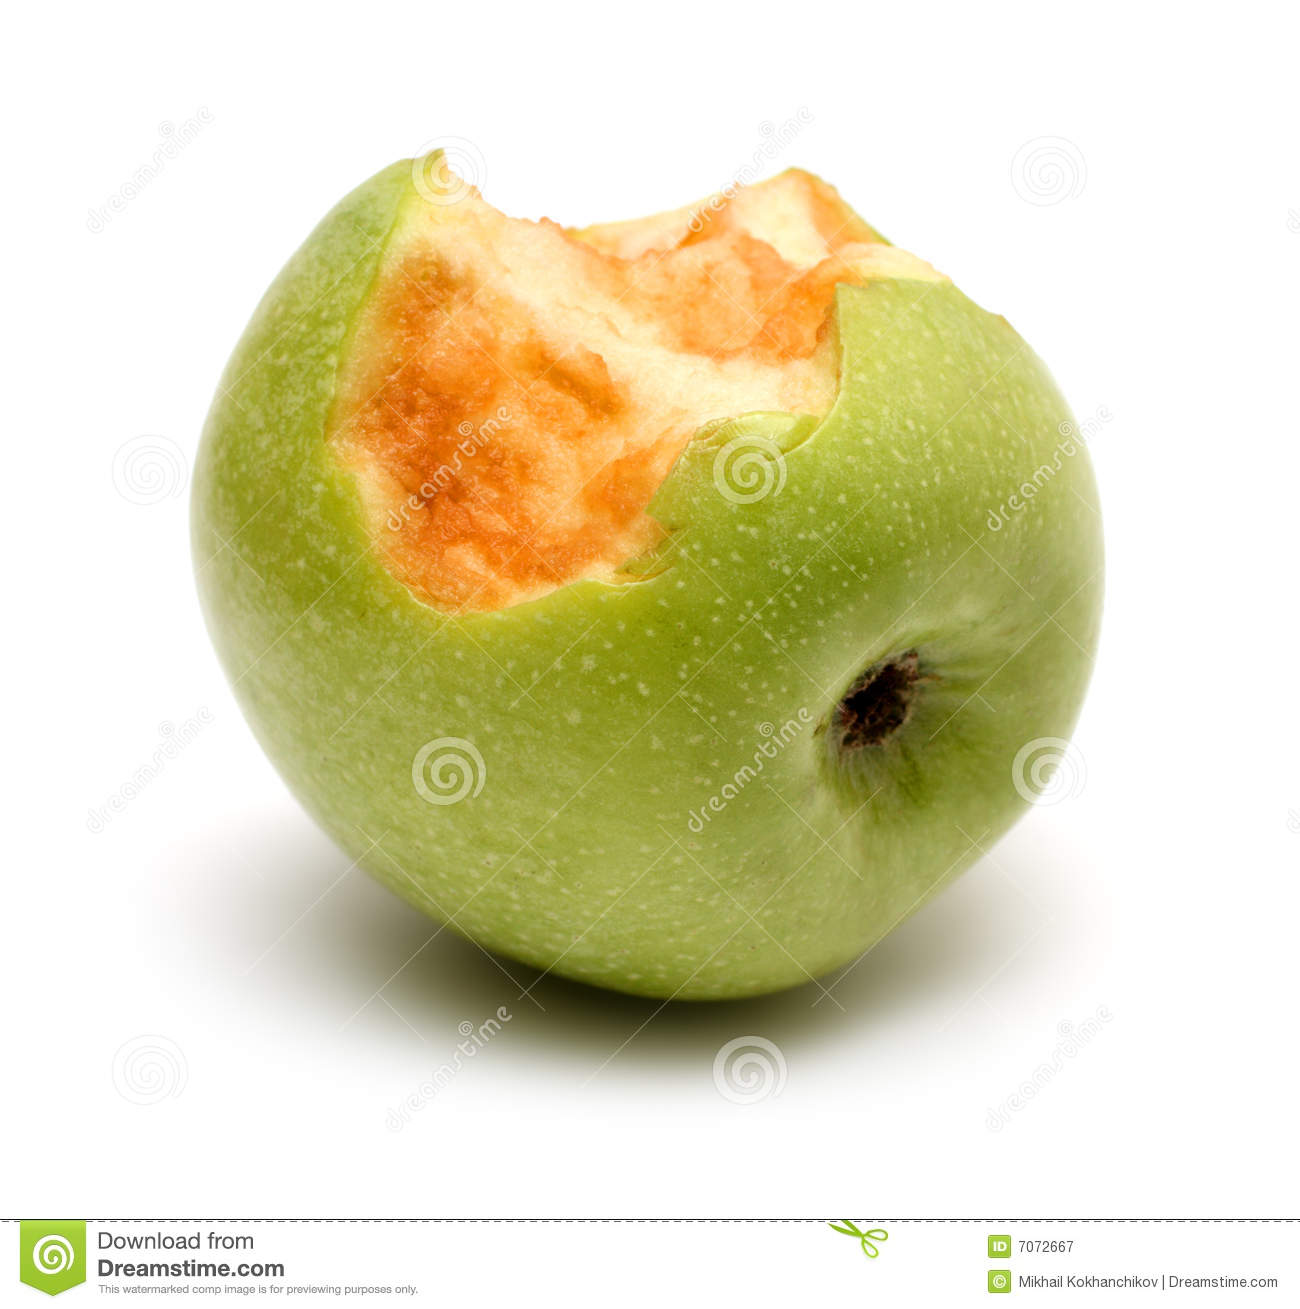 äpple biten green